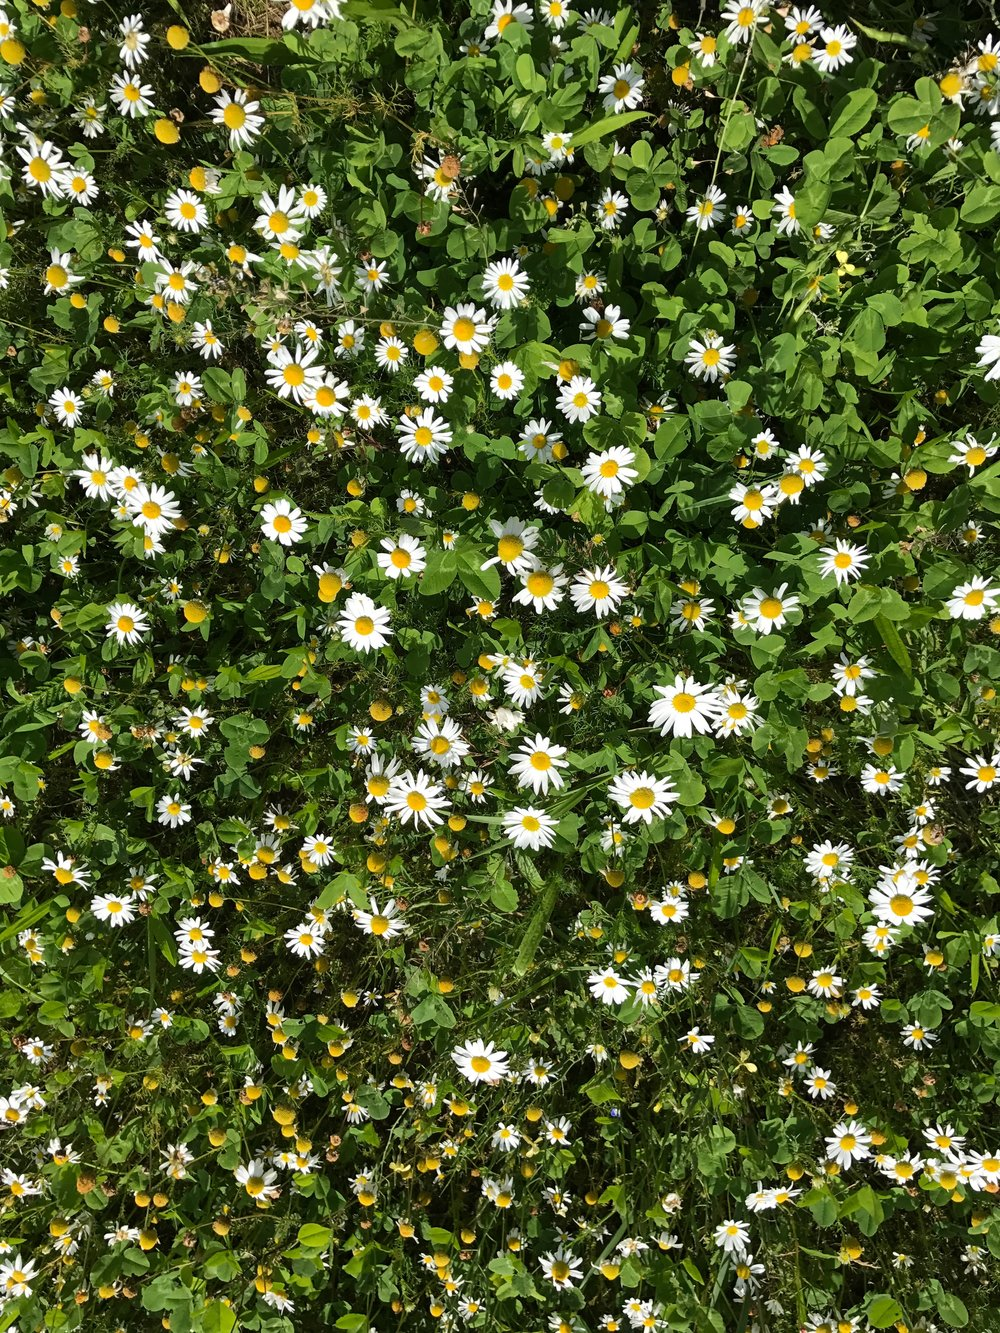 Our ox-eye daisies are thriving!